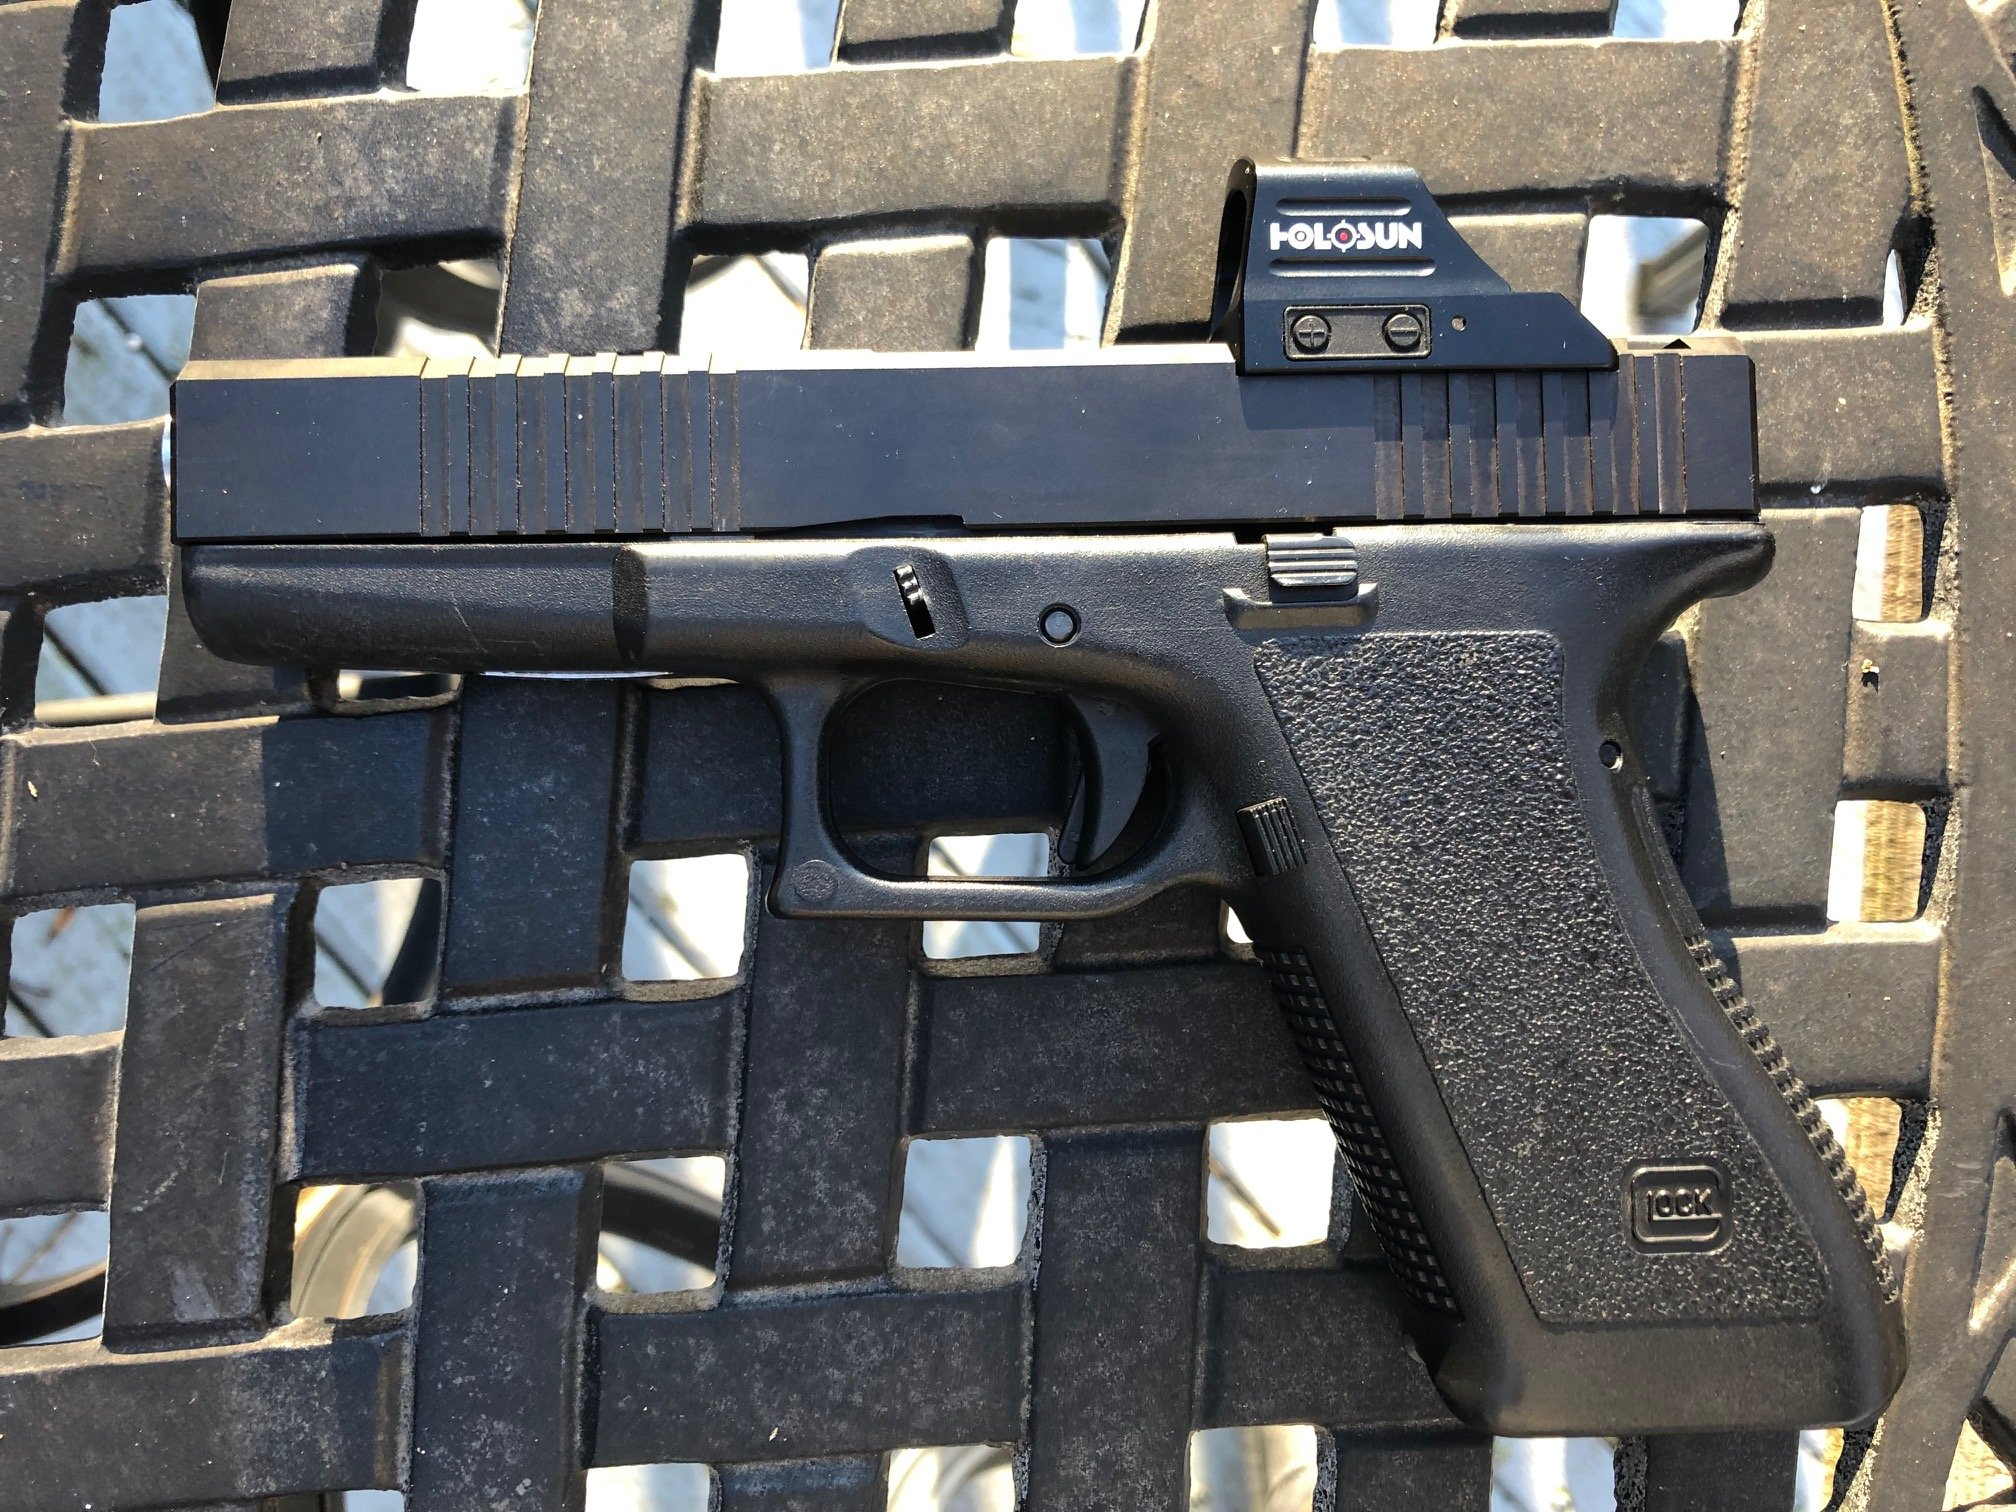 Carry Optics G17 for my sons  - Glock - Brian Enos's Forums